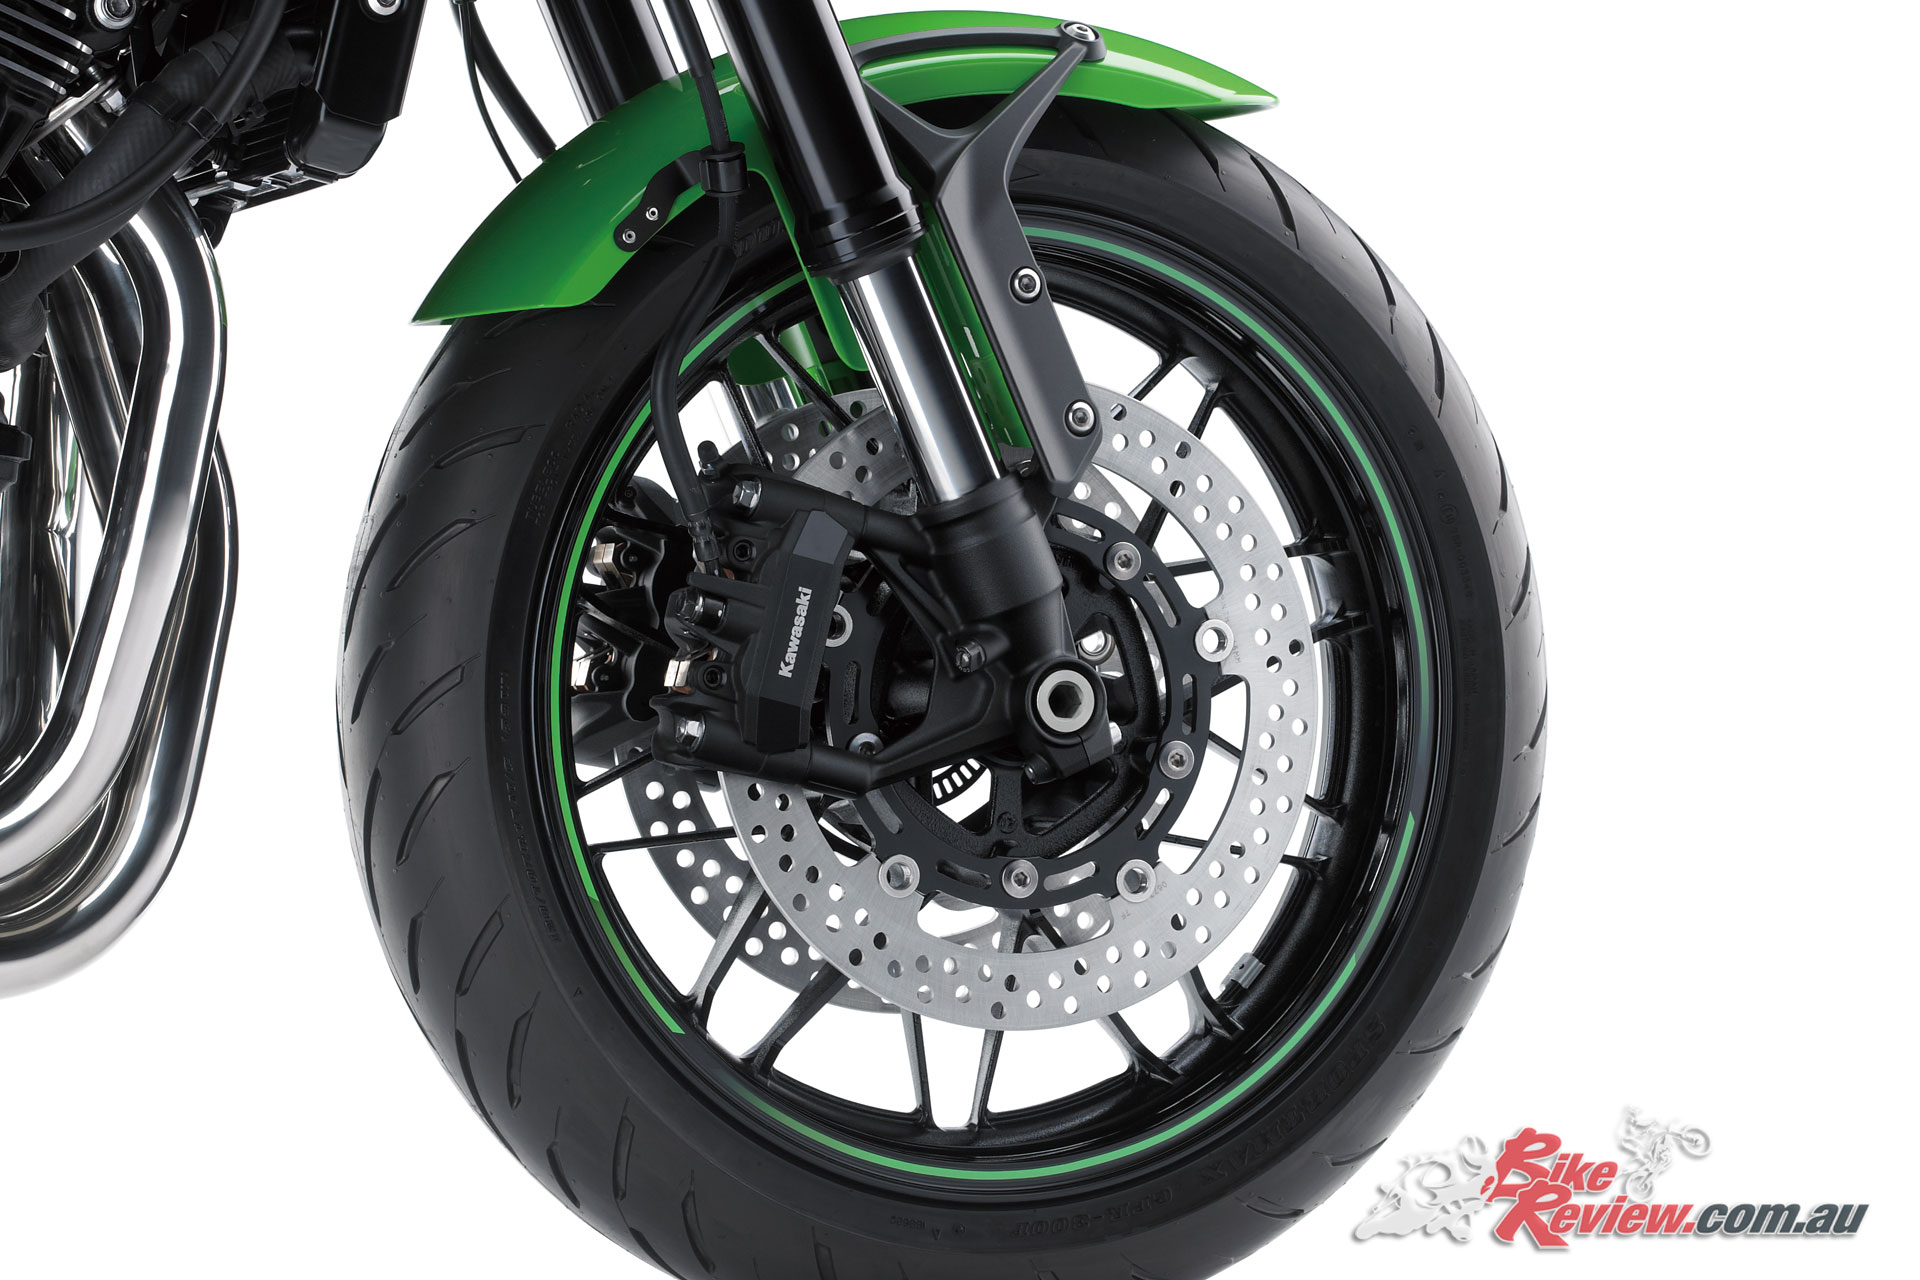 300mm front rotors are joined by four-piston radial calipers